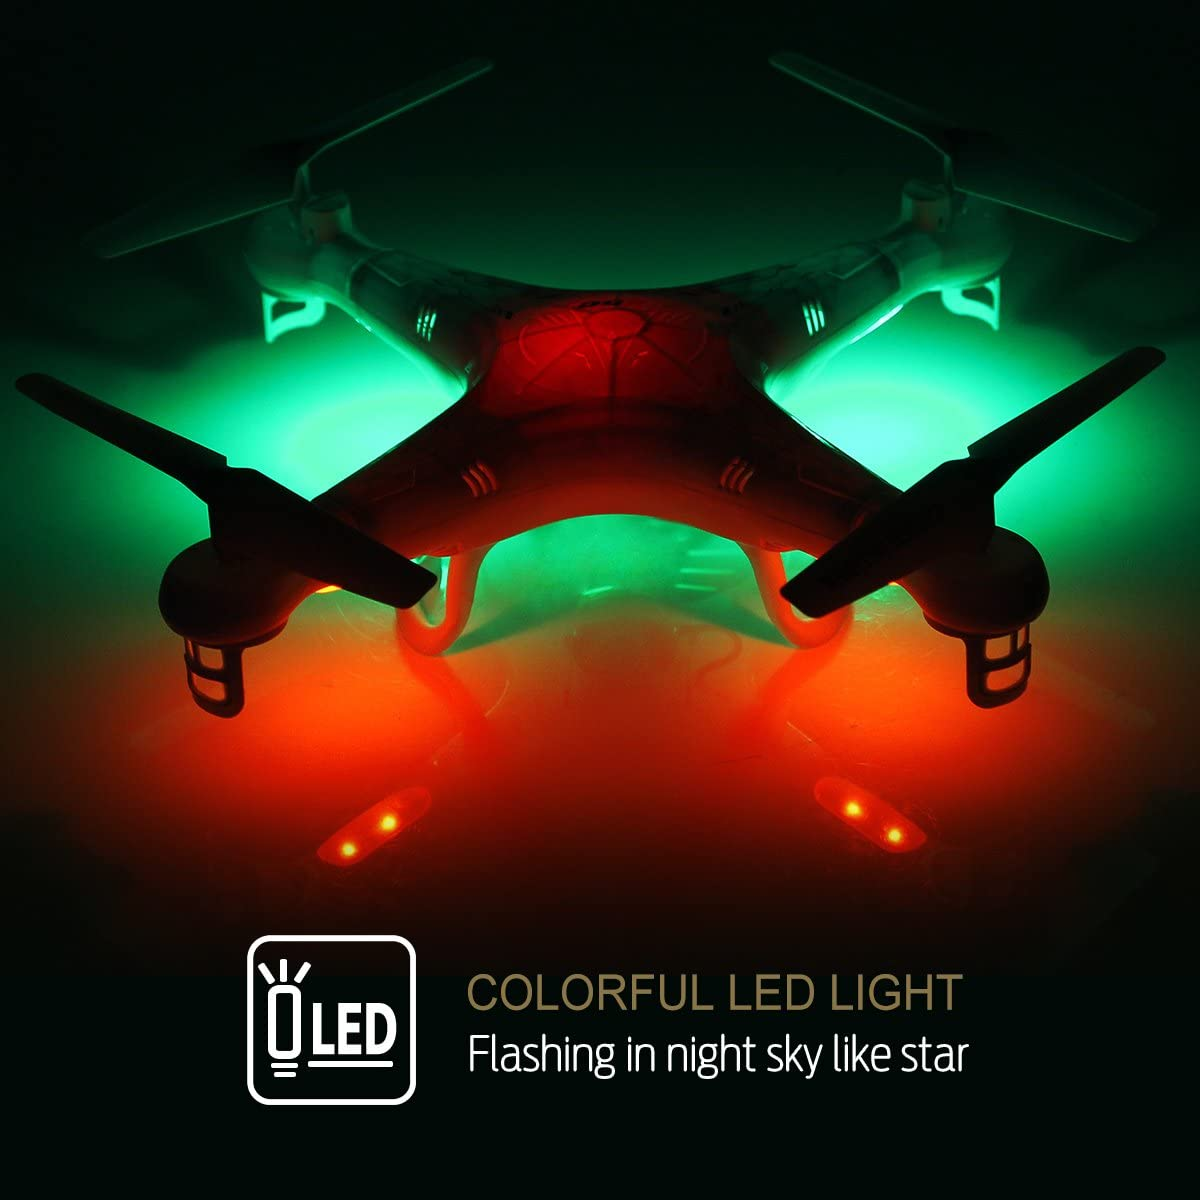 Syma X5A-1 dodoeleph is at #10 for best drones under 50 dollars